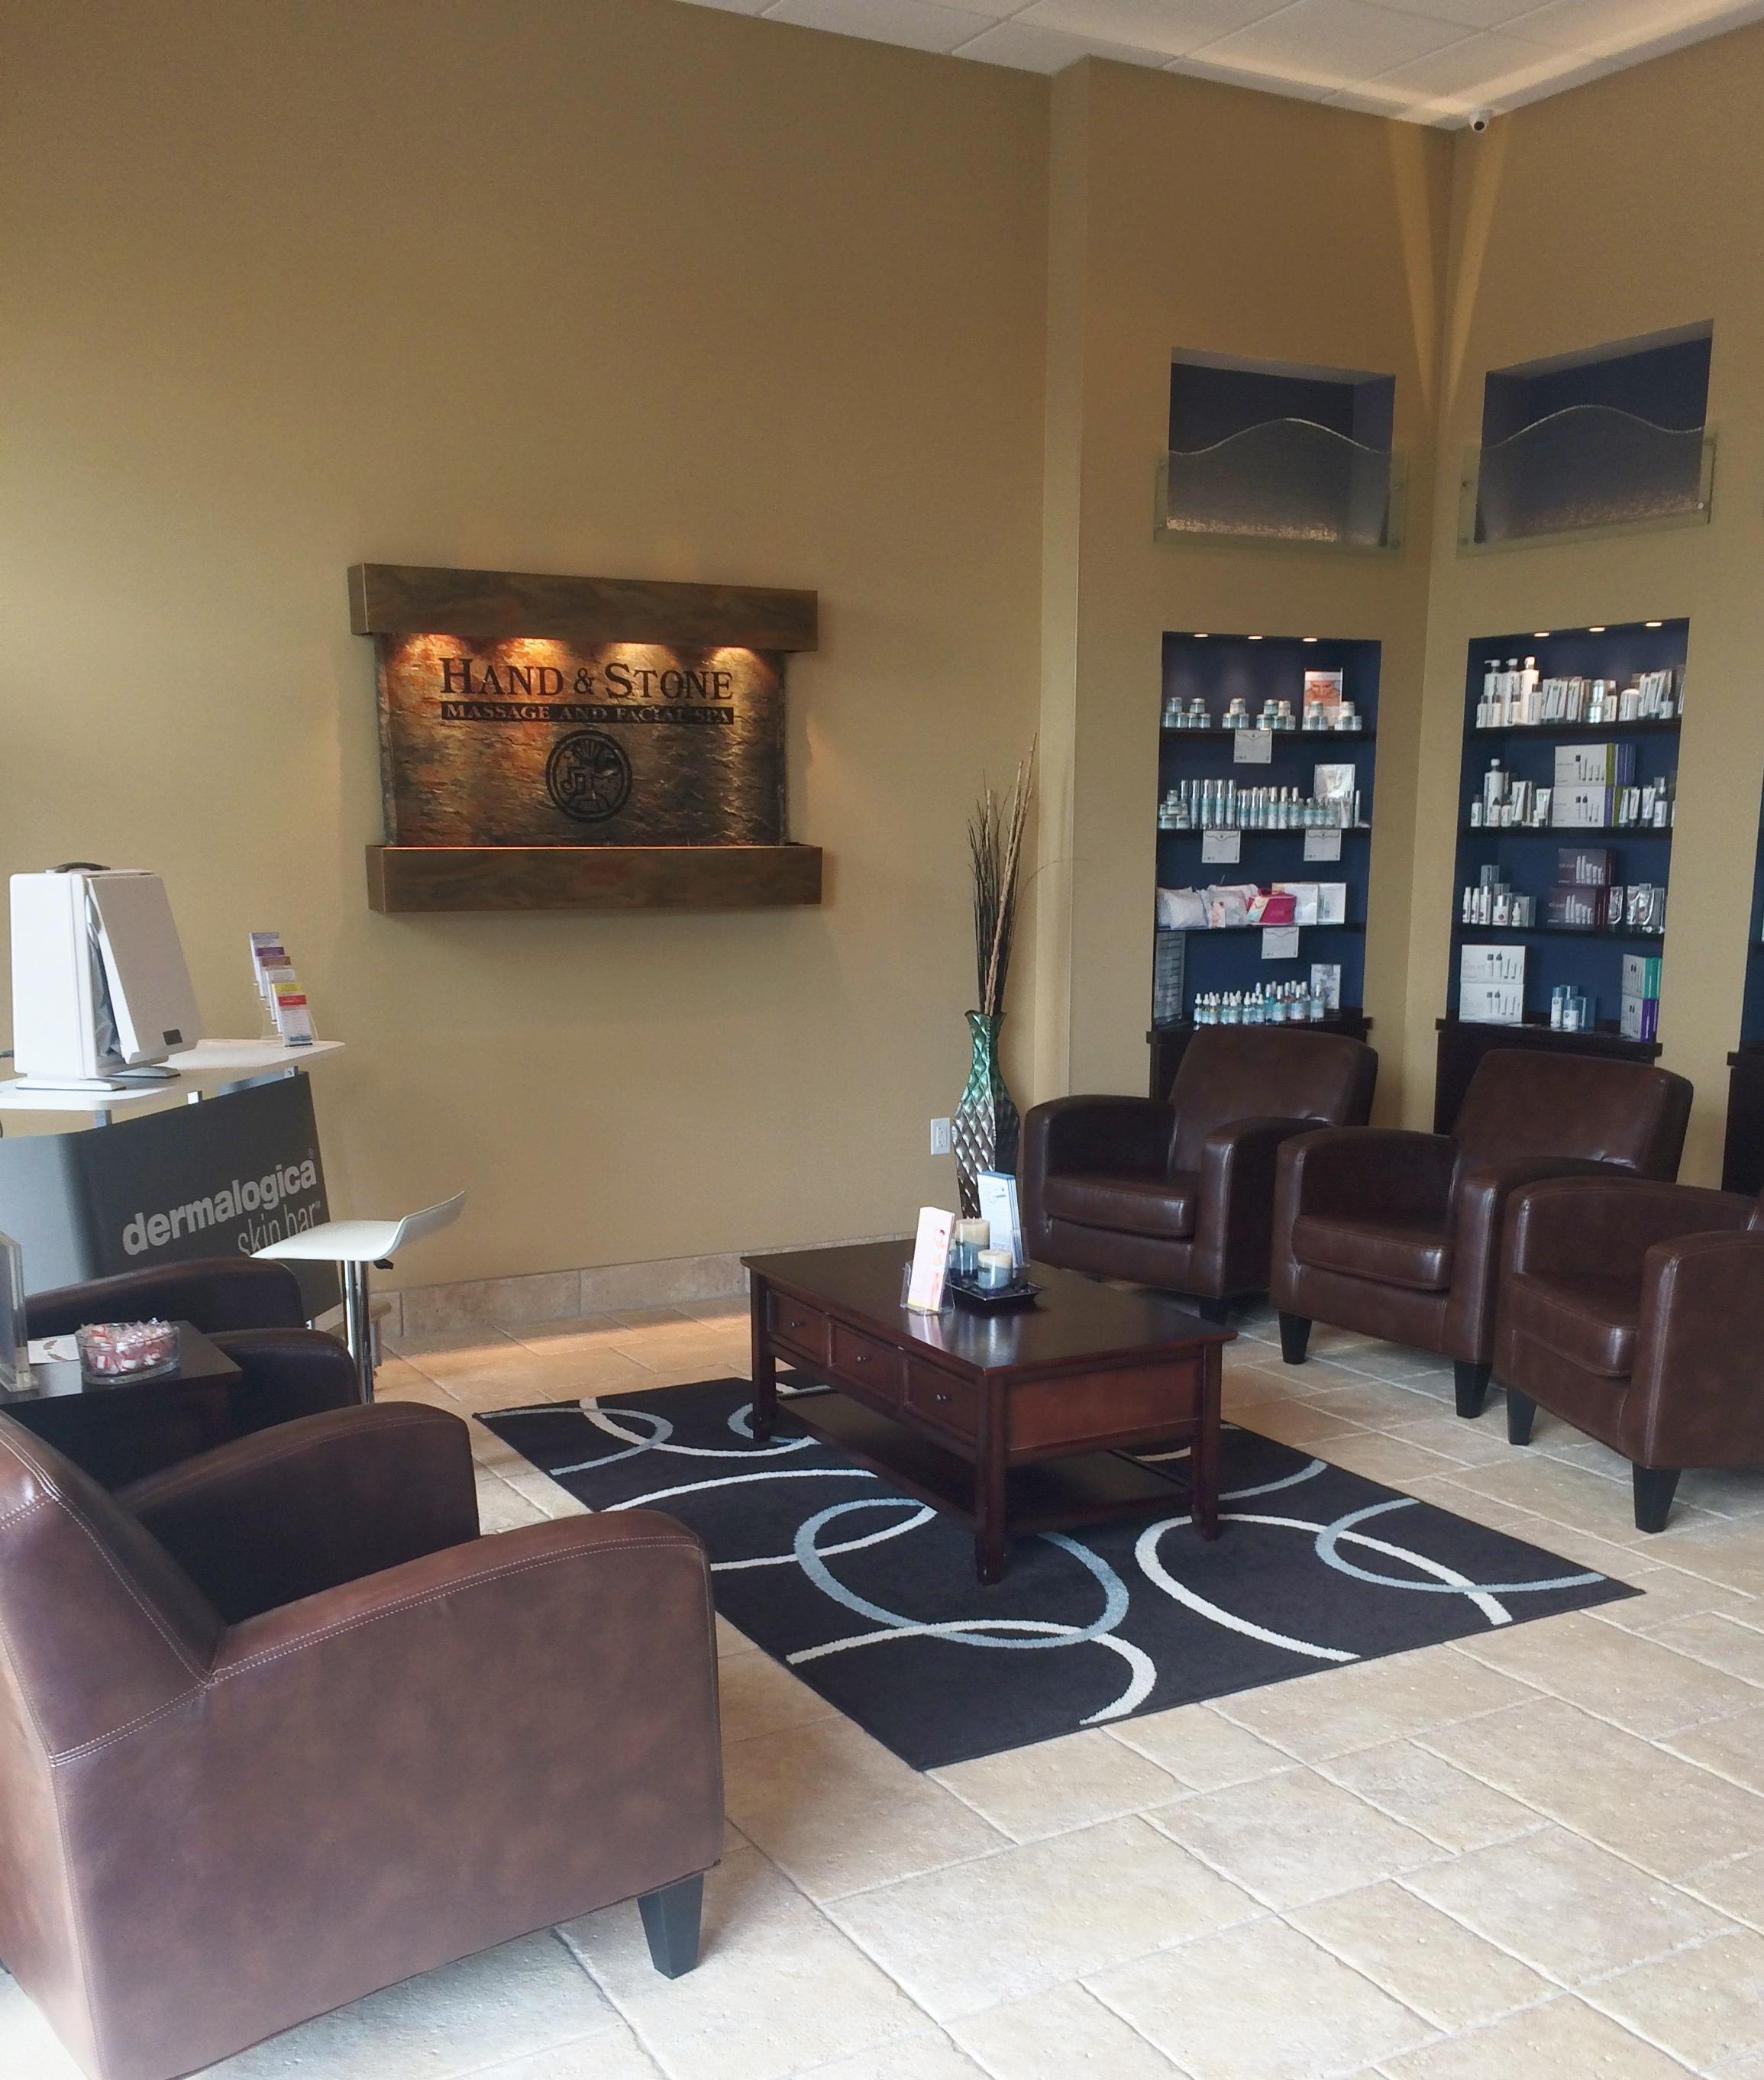 Hand and Stone Massage and Facial Spa Brandon Florida